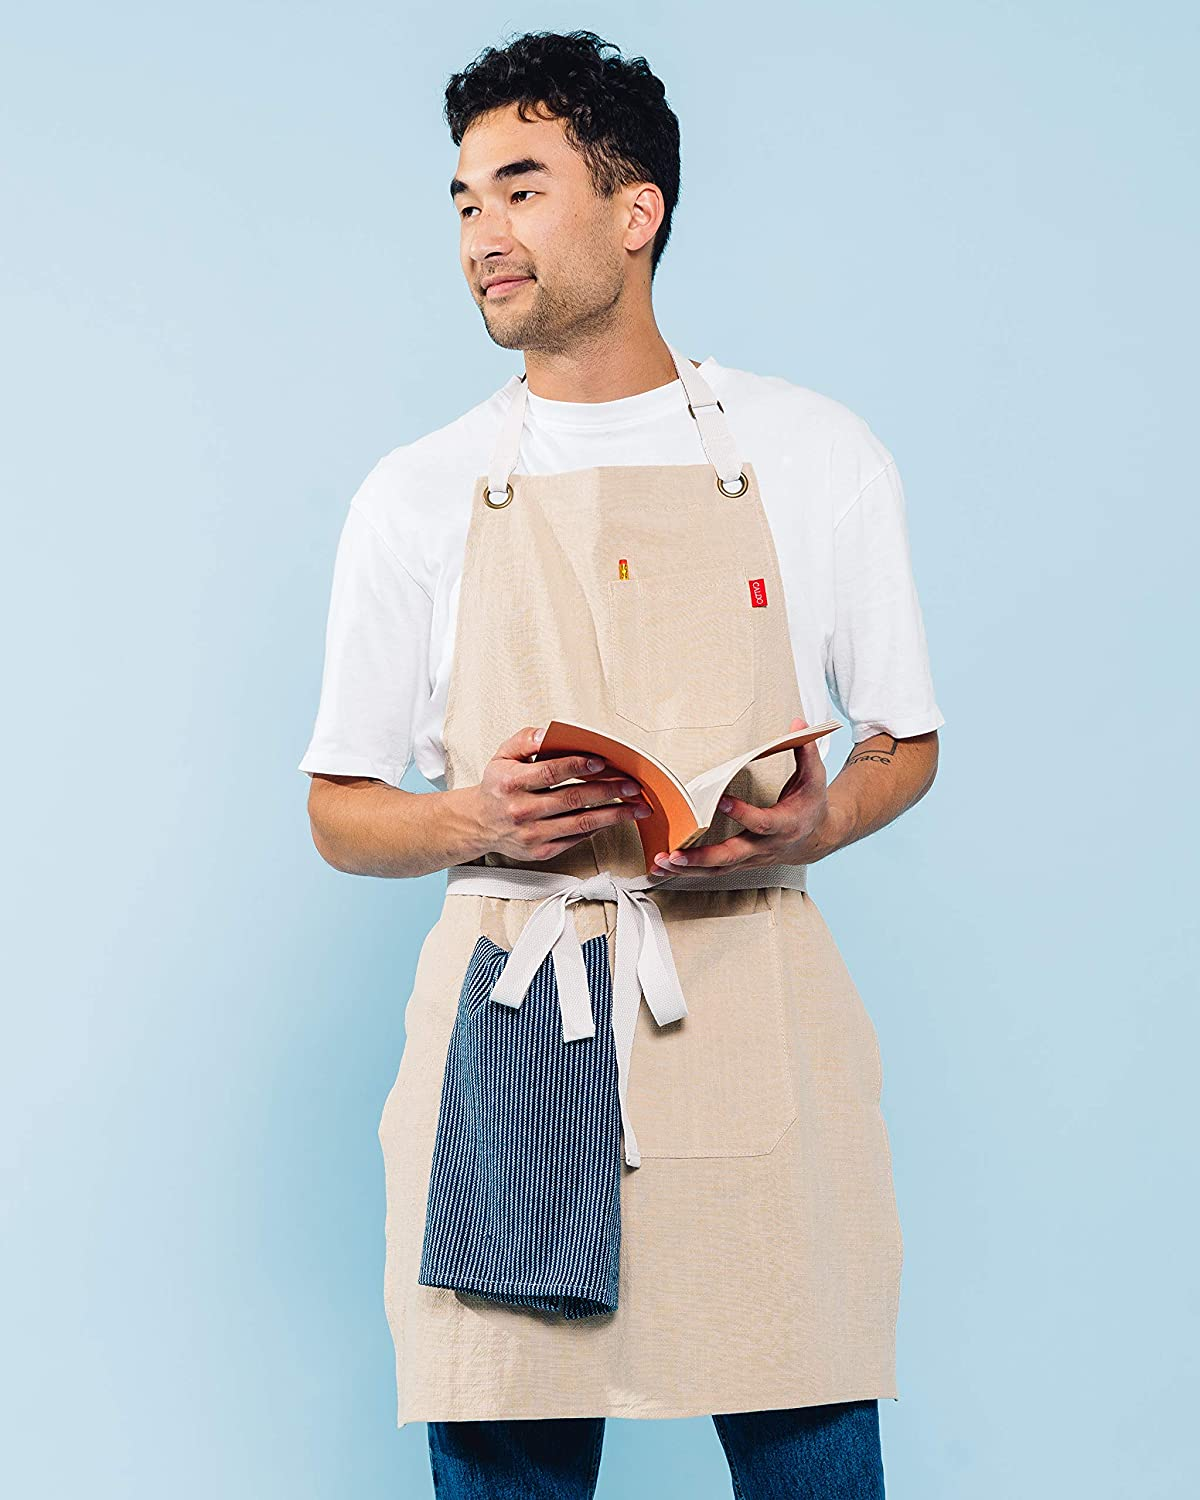 Mens and Womens Linen Bib Apron Grey Caldo Linen Kitchen Apron Adjustable with Pockets